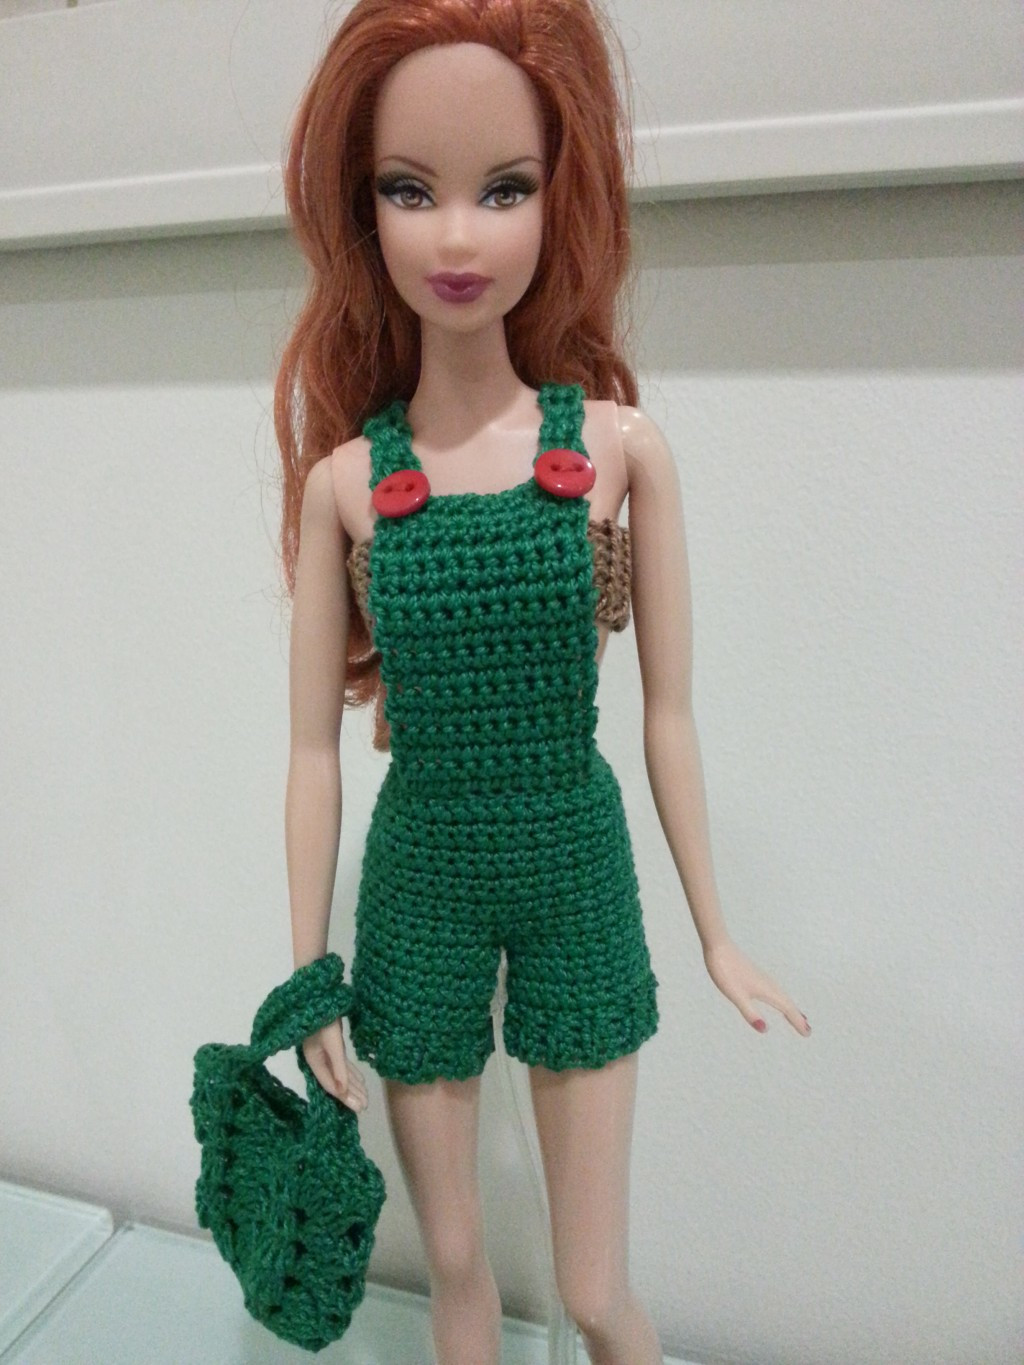 Free Barbie Crochet Patterns Fresh Barbie Basic Overalls Free Crochet Pattern Of Awesome 43 Pics Free Barbie Crochet Patterns